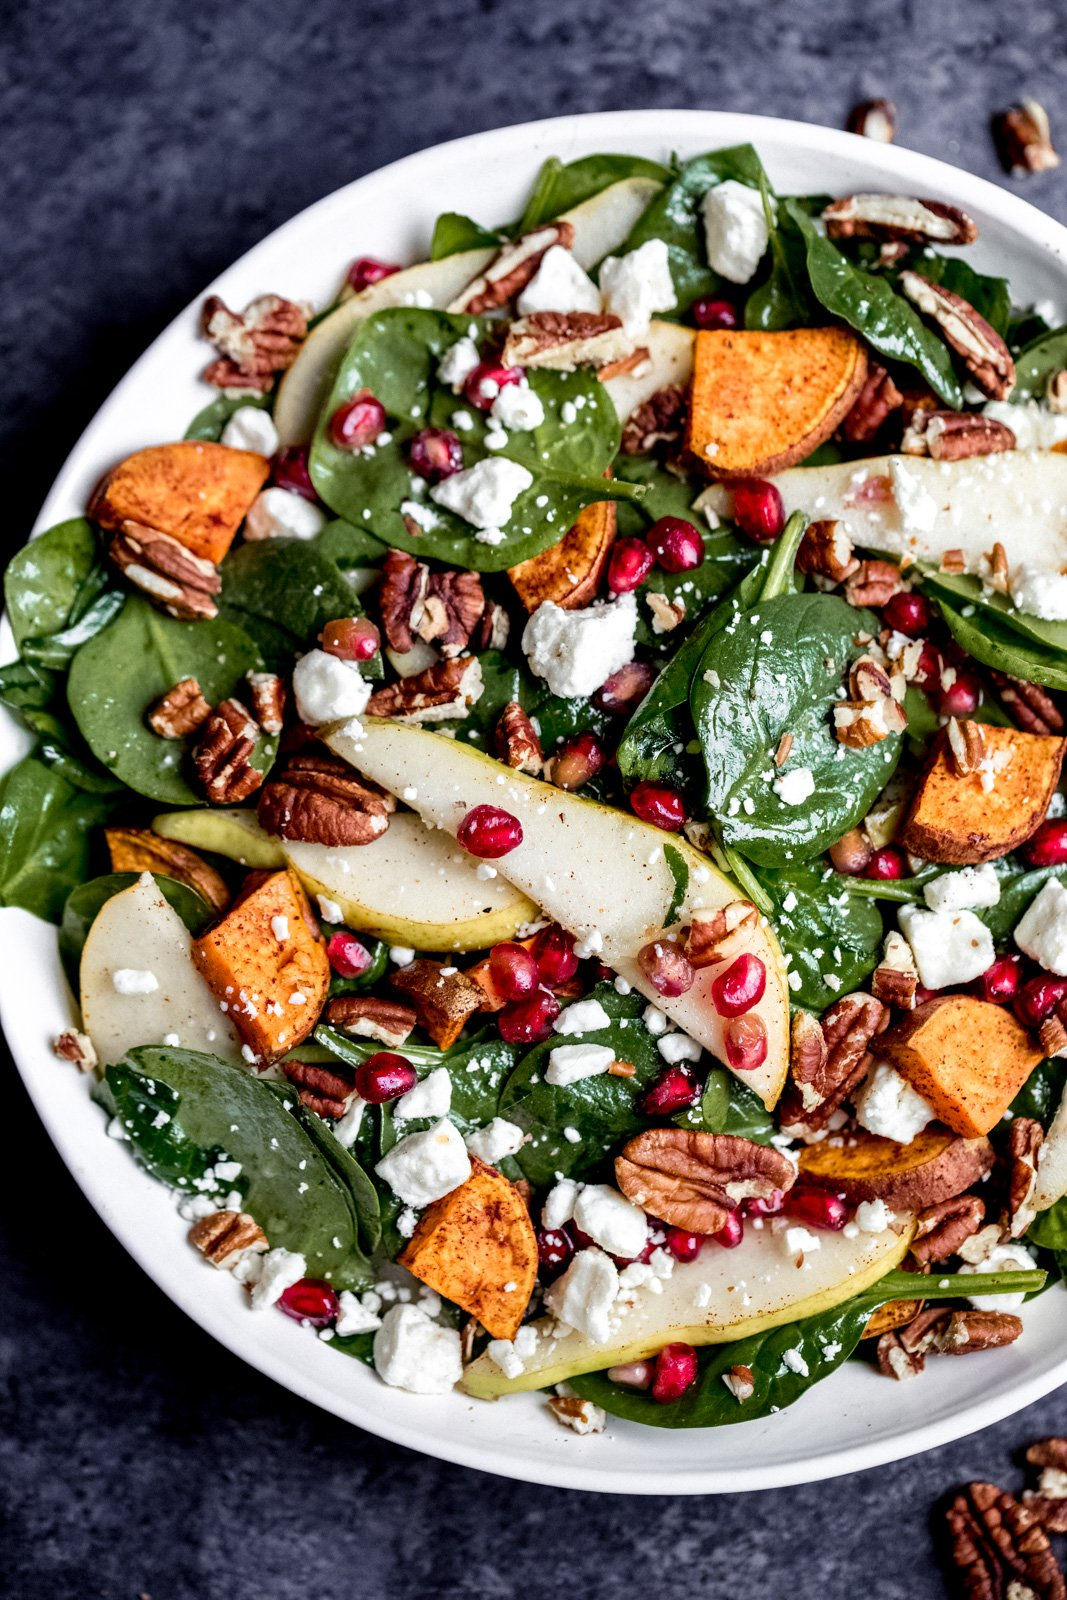 pomegranate spinach salad with pears and sweet potato in a bowl